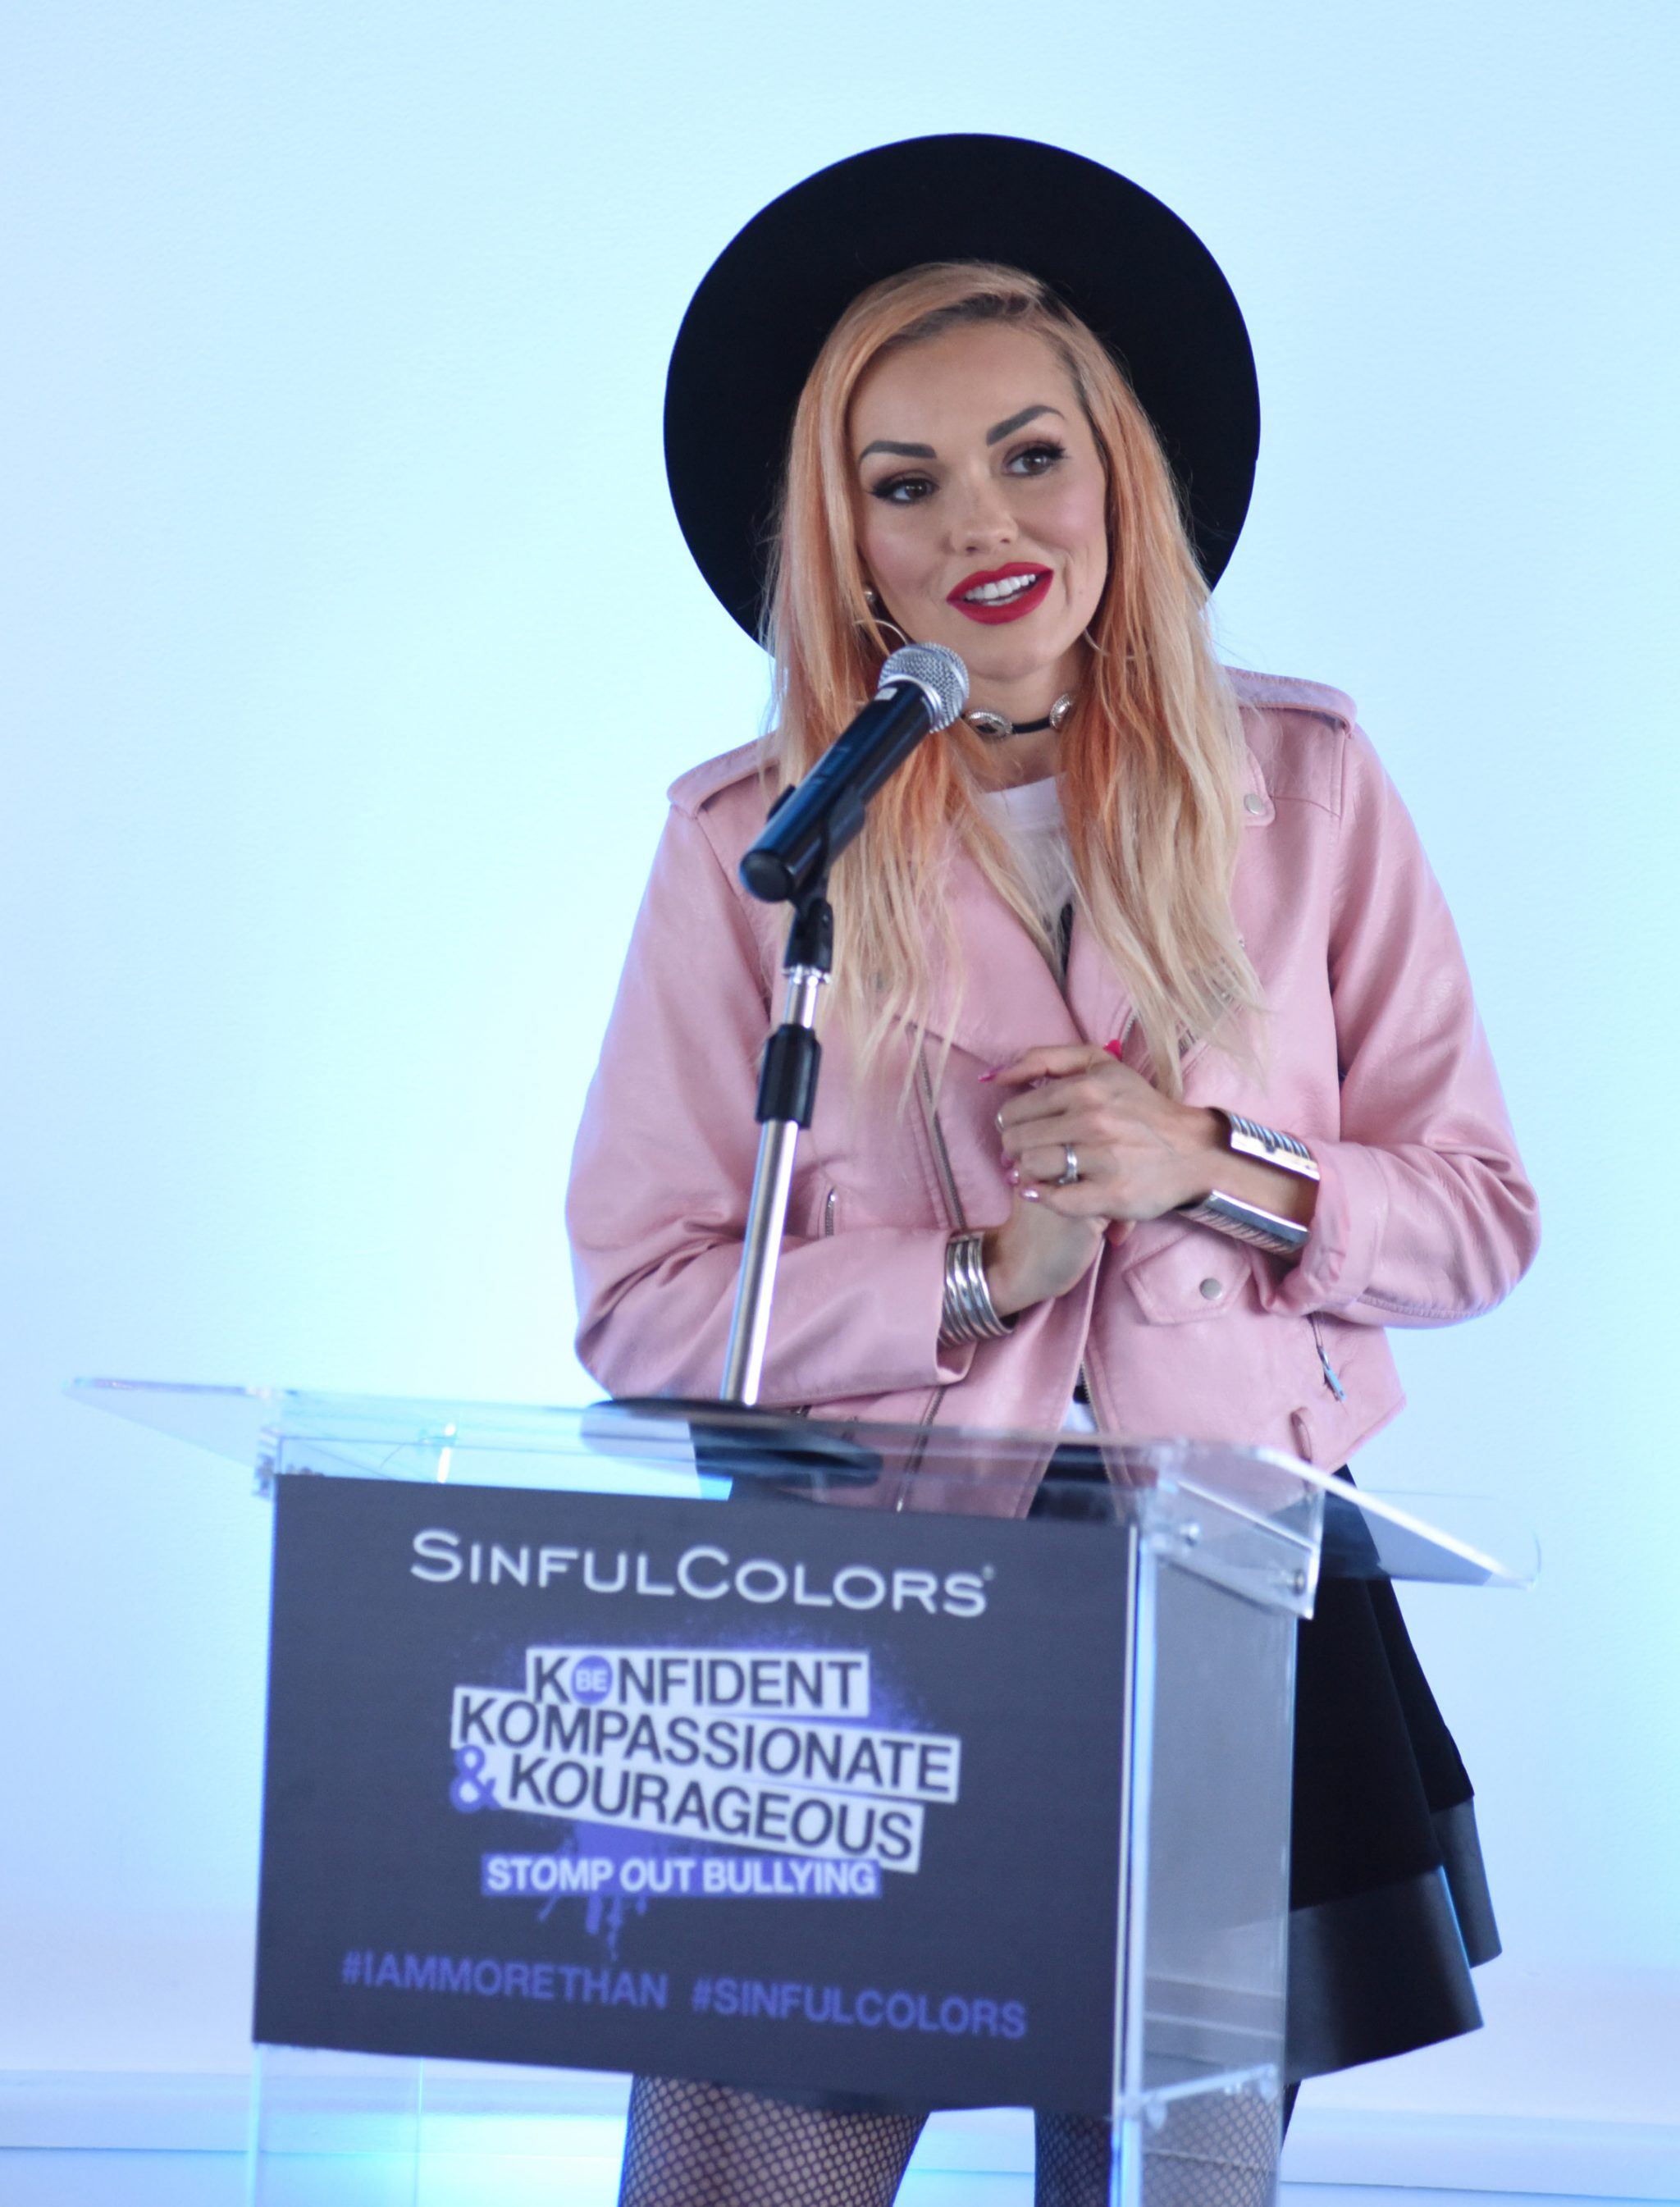 LOS ANGELES, CA - JULY 14:  (EXCLUSIVE COVERAGE) Kandee Johnson speaks at SinfulColors and Kylie Jenner Announce charitybuzz.com Auction for Anti Bullying on July 14, 2016 in Los Angeles, California.  (Photo by Vivien Killilea/Getty Images for SinfulColors)